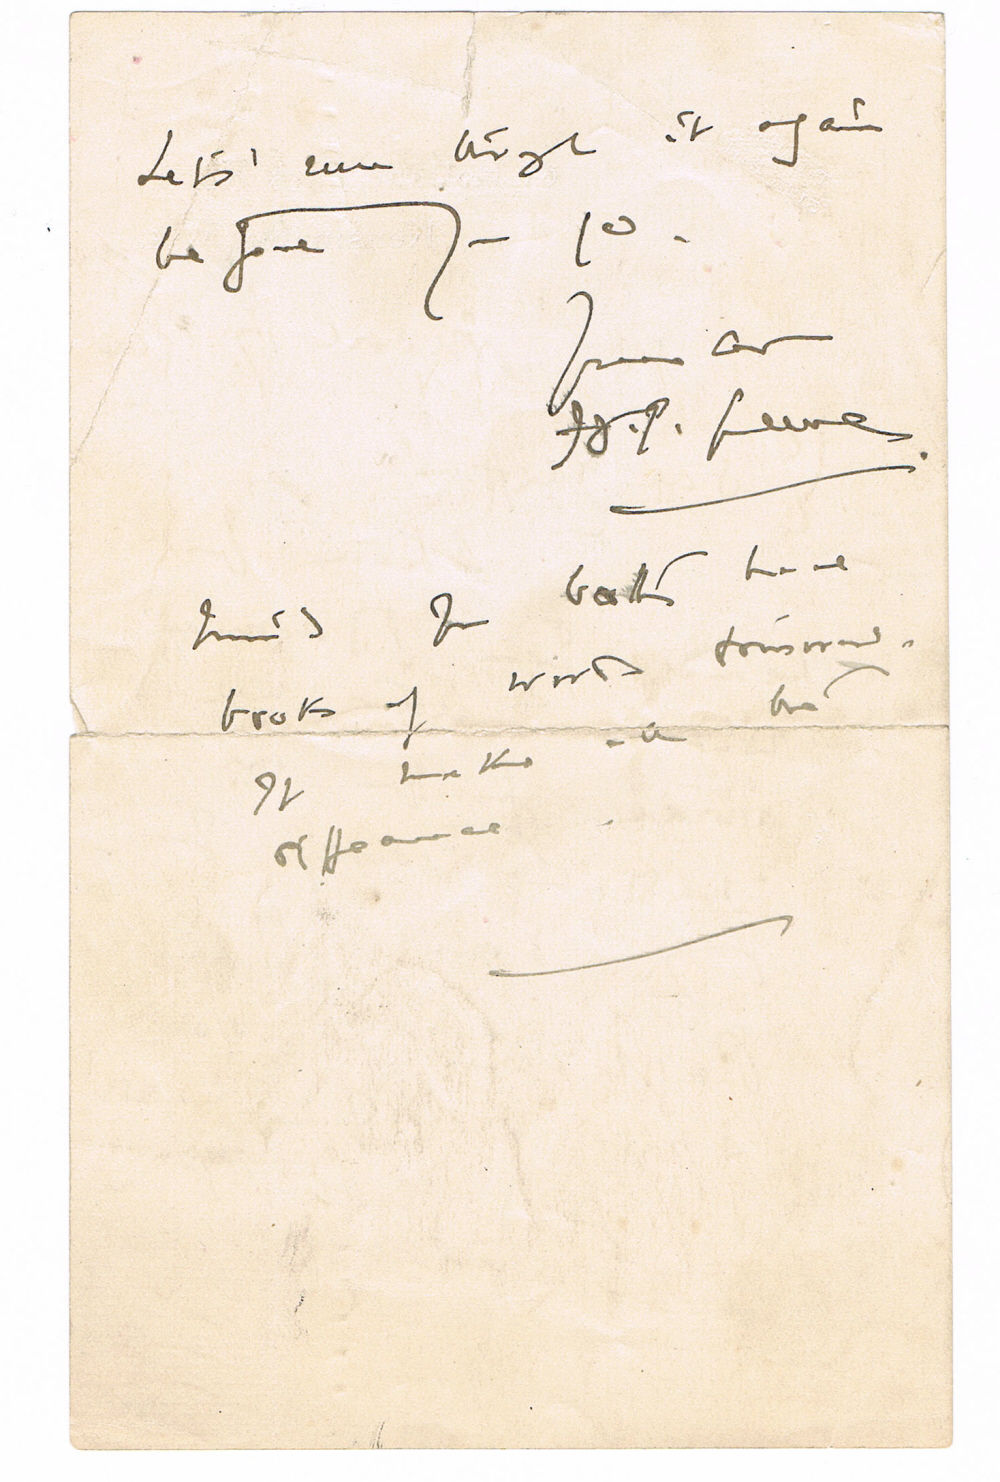 FOUR AUTOGRAPH LETTERS SIGNED BY THE FAMOUS